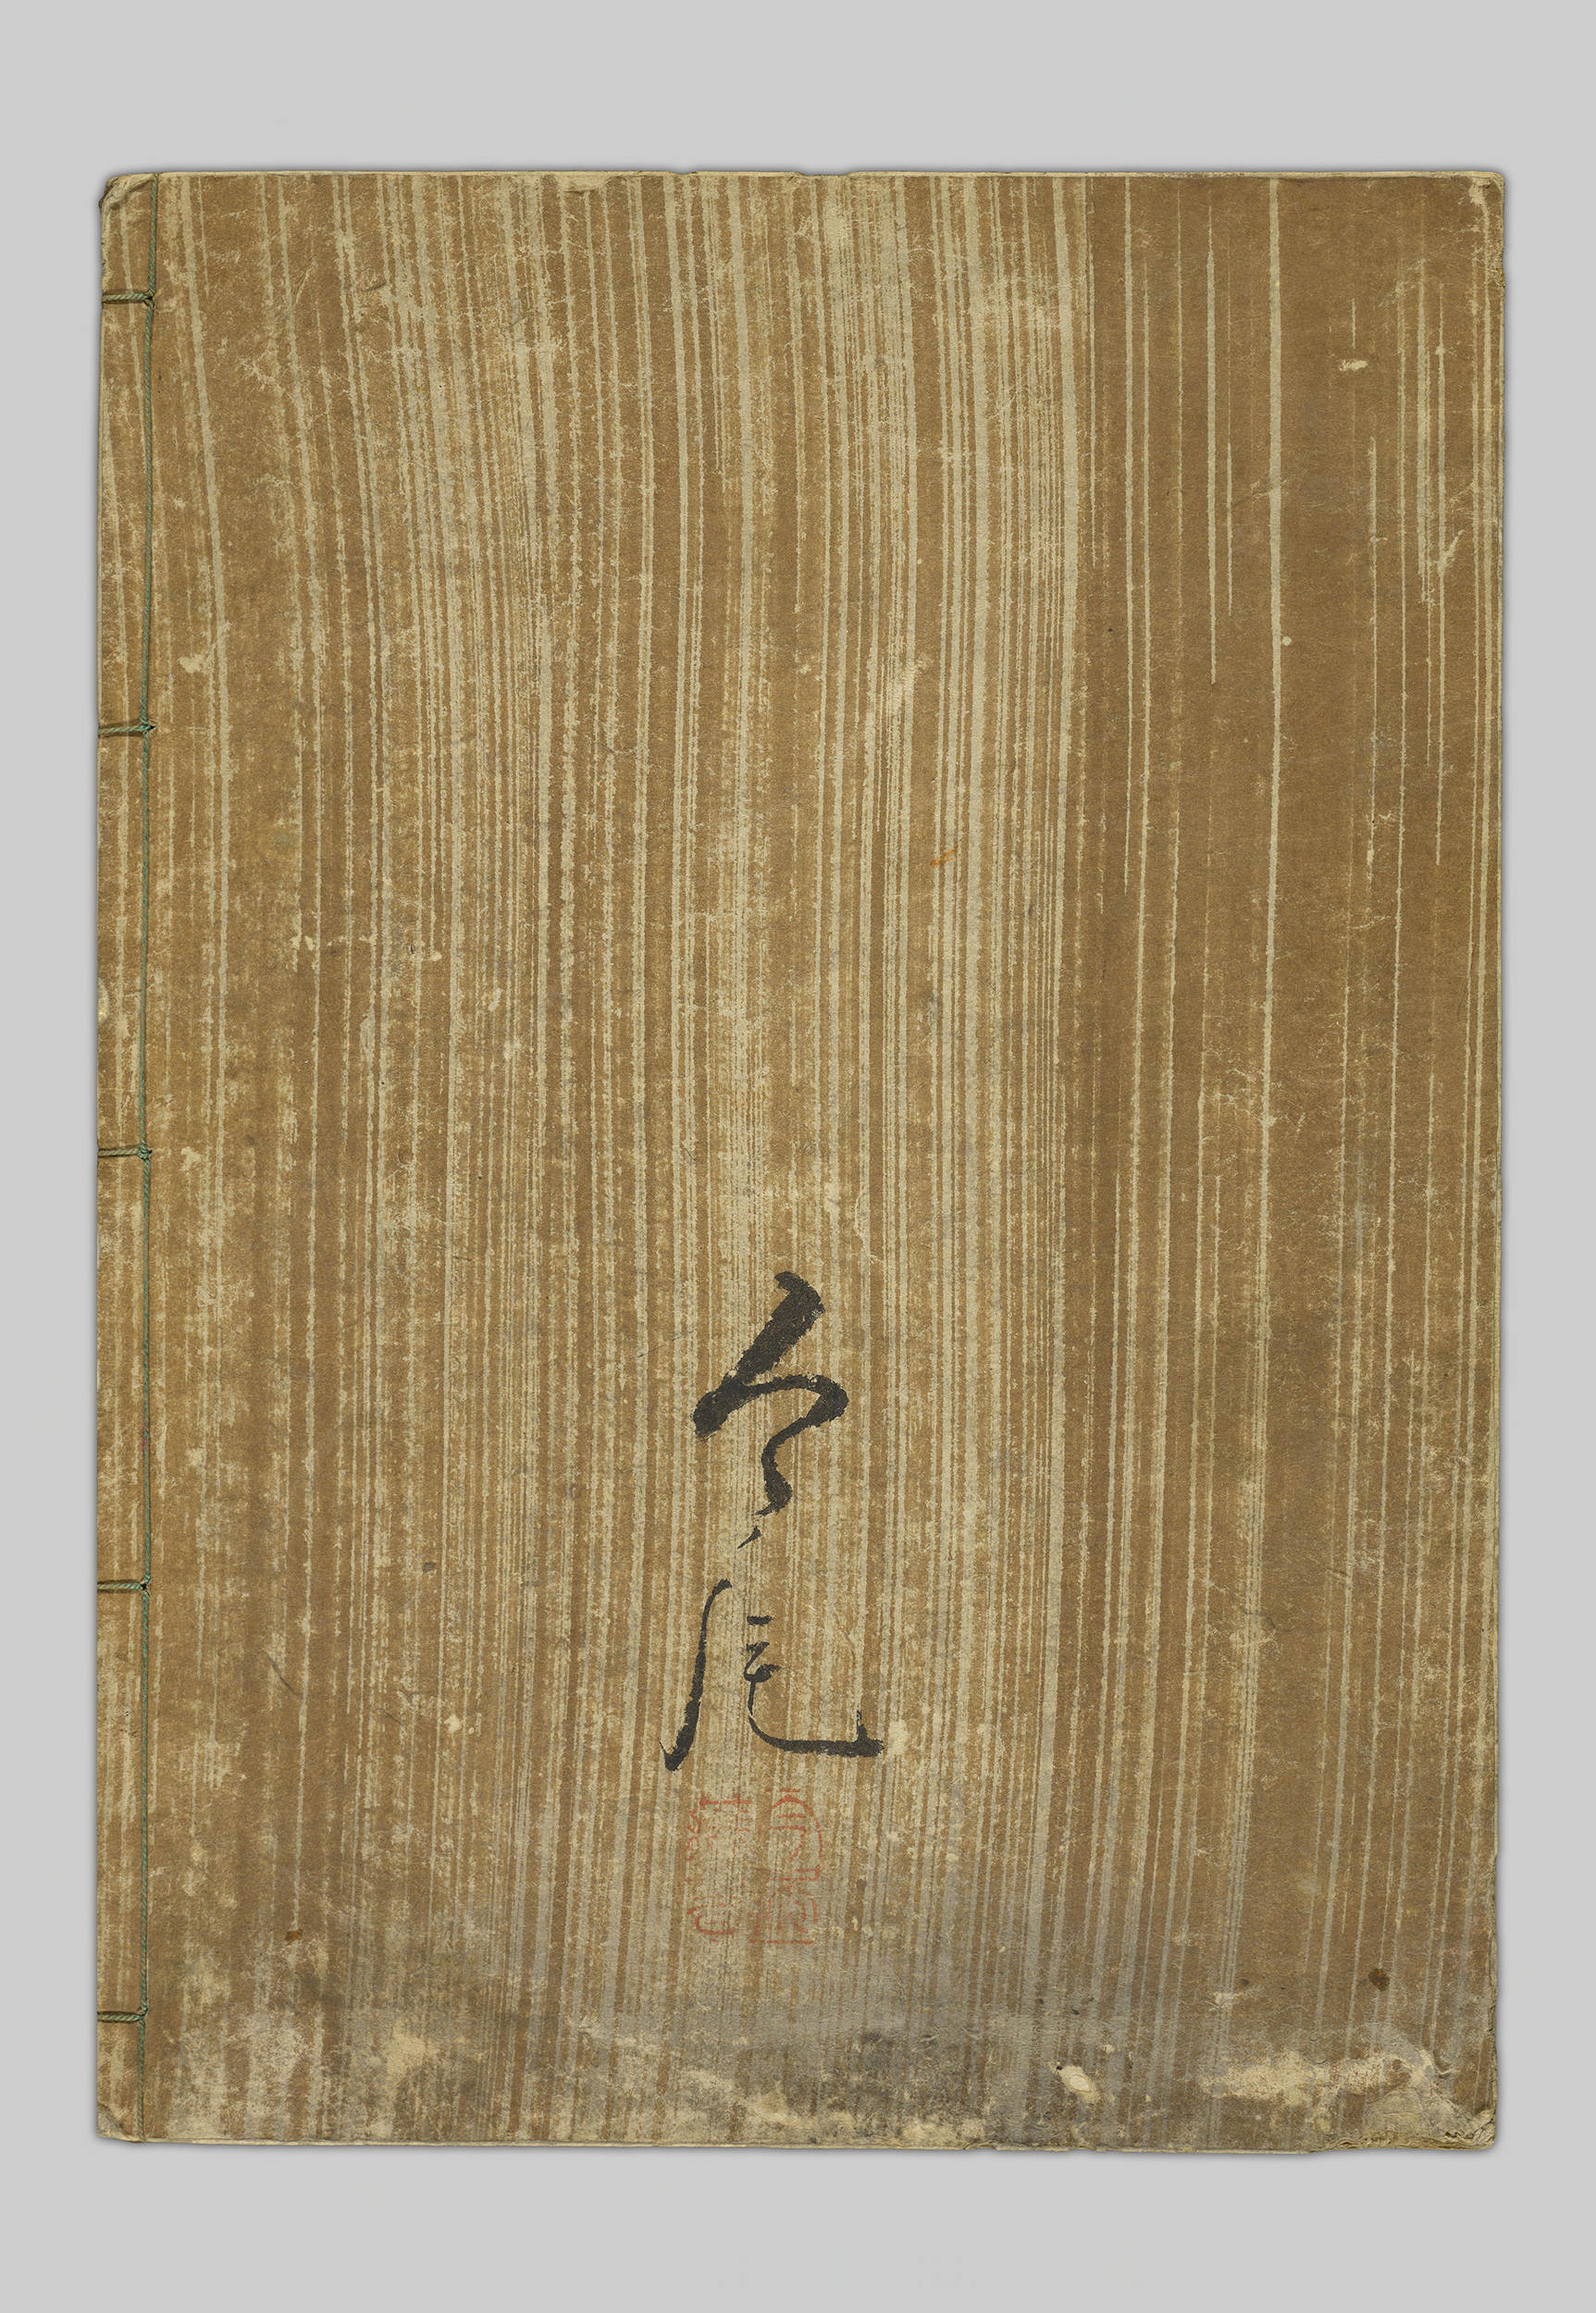 The back cover of Moyō no hon 模様之本, or Pattern book.